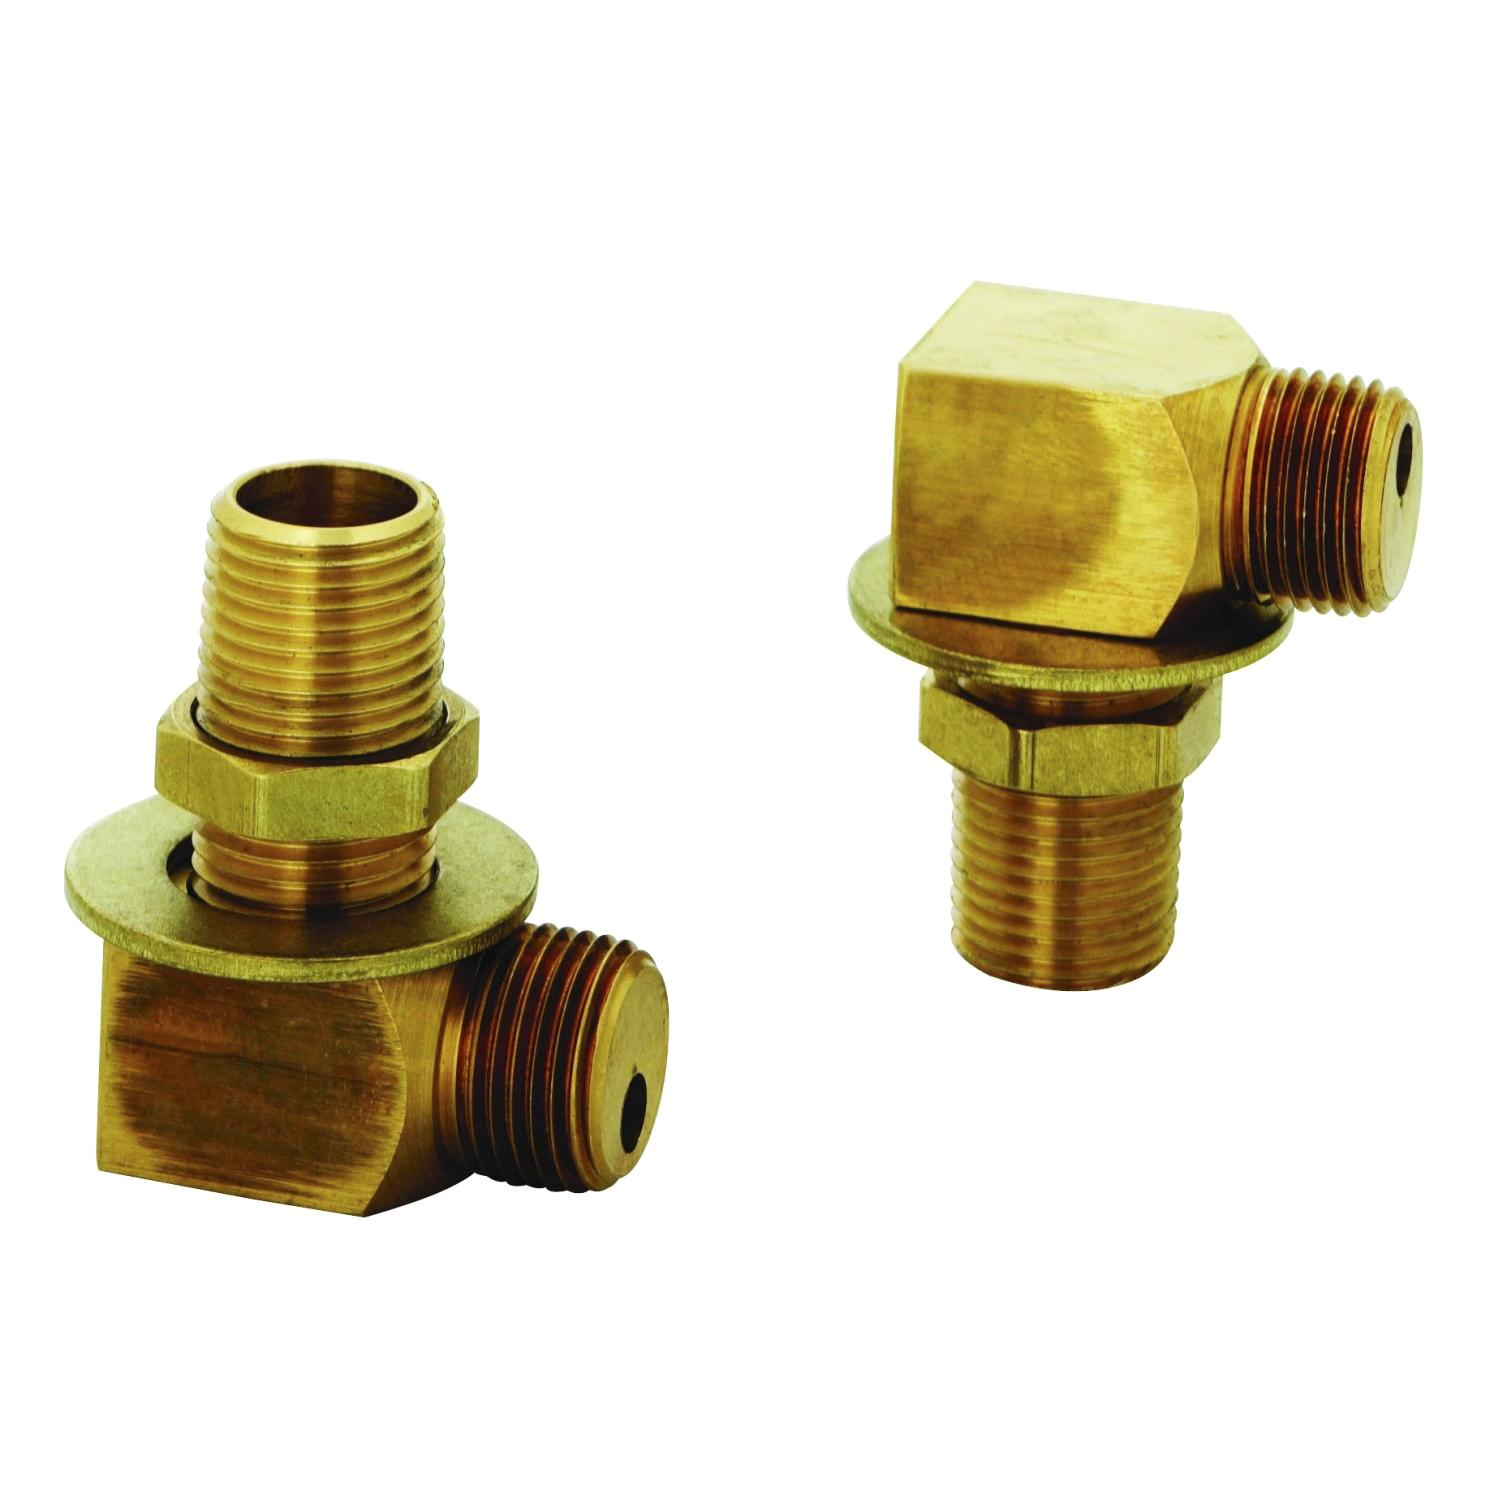 "T&S BRASS MASTER PACK, 1/2"" NPT INLET INSTALLATION KITS (12 BAGGED KITS)"